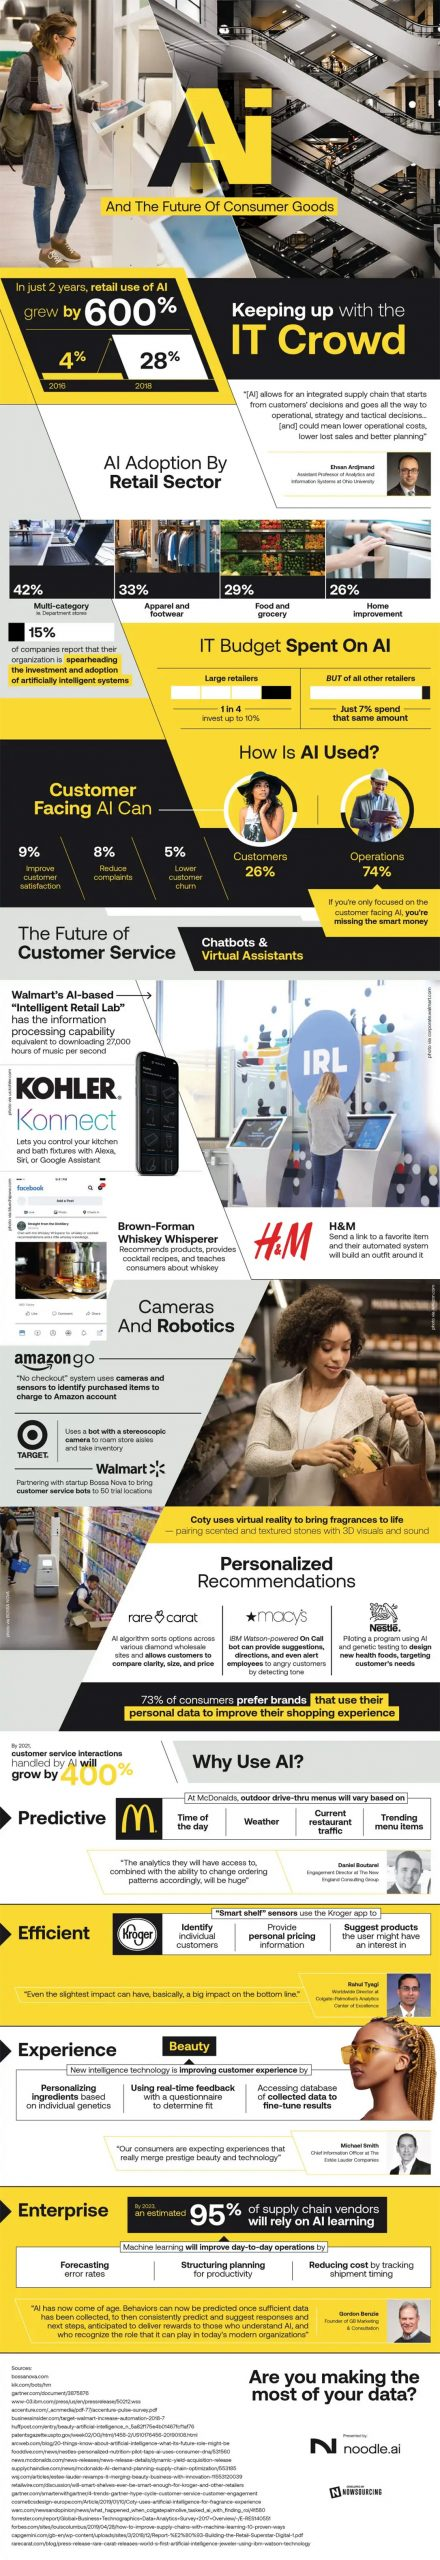 Artificial intelligence consumer